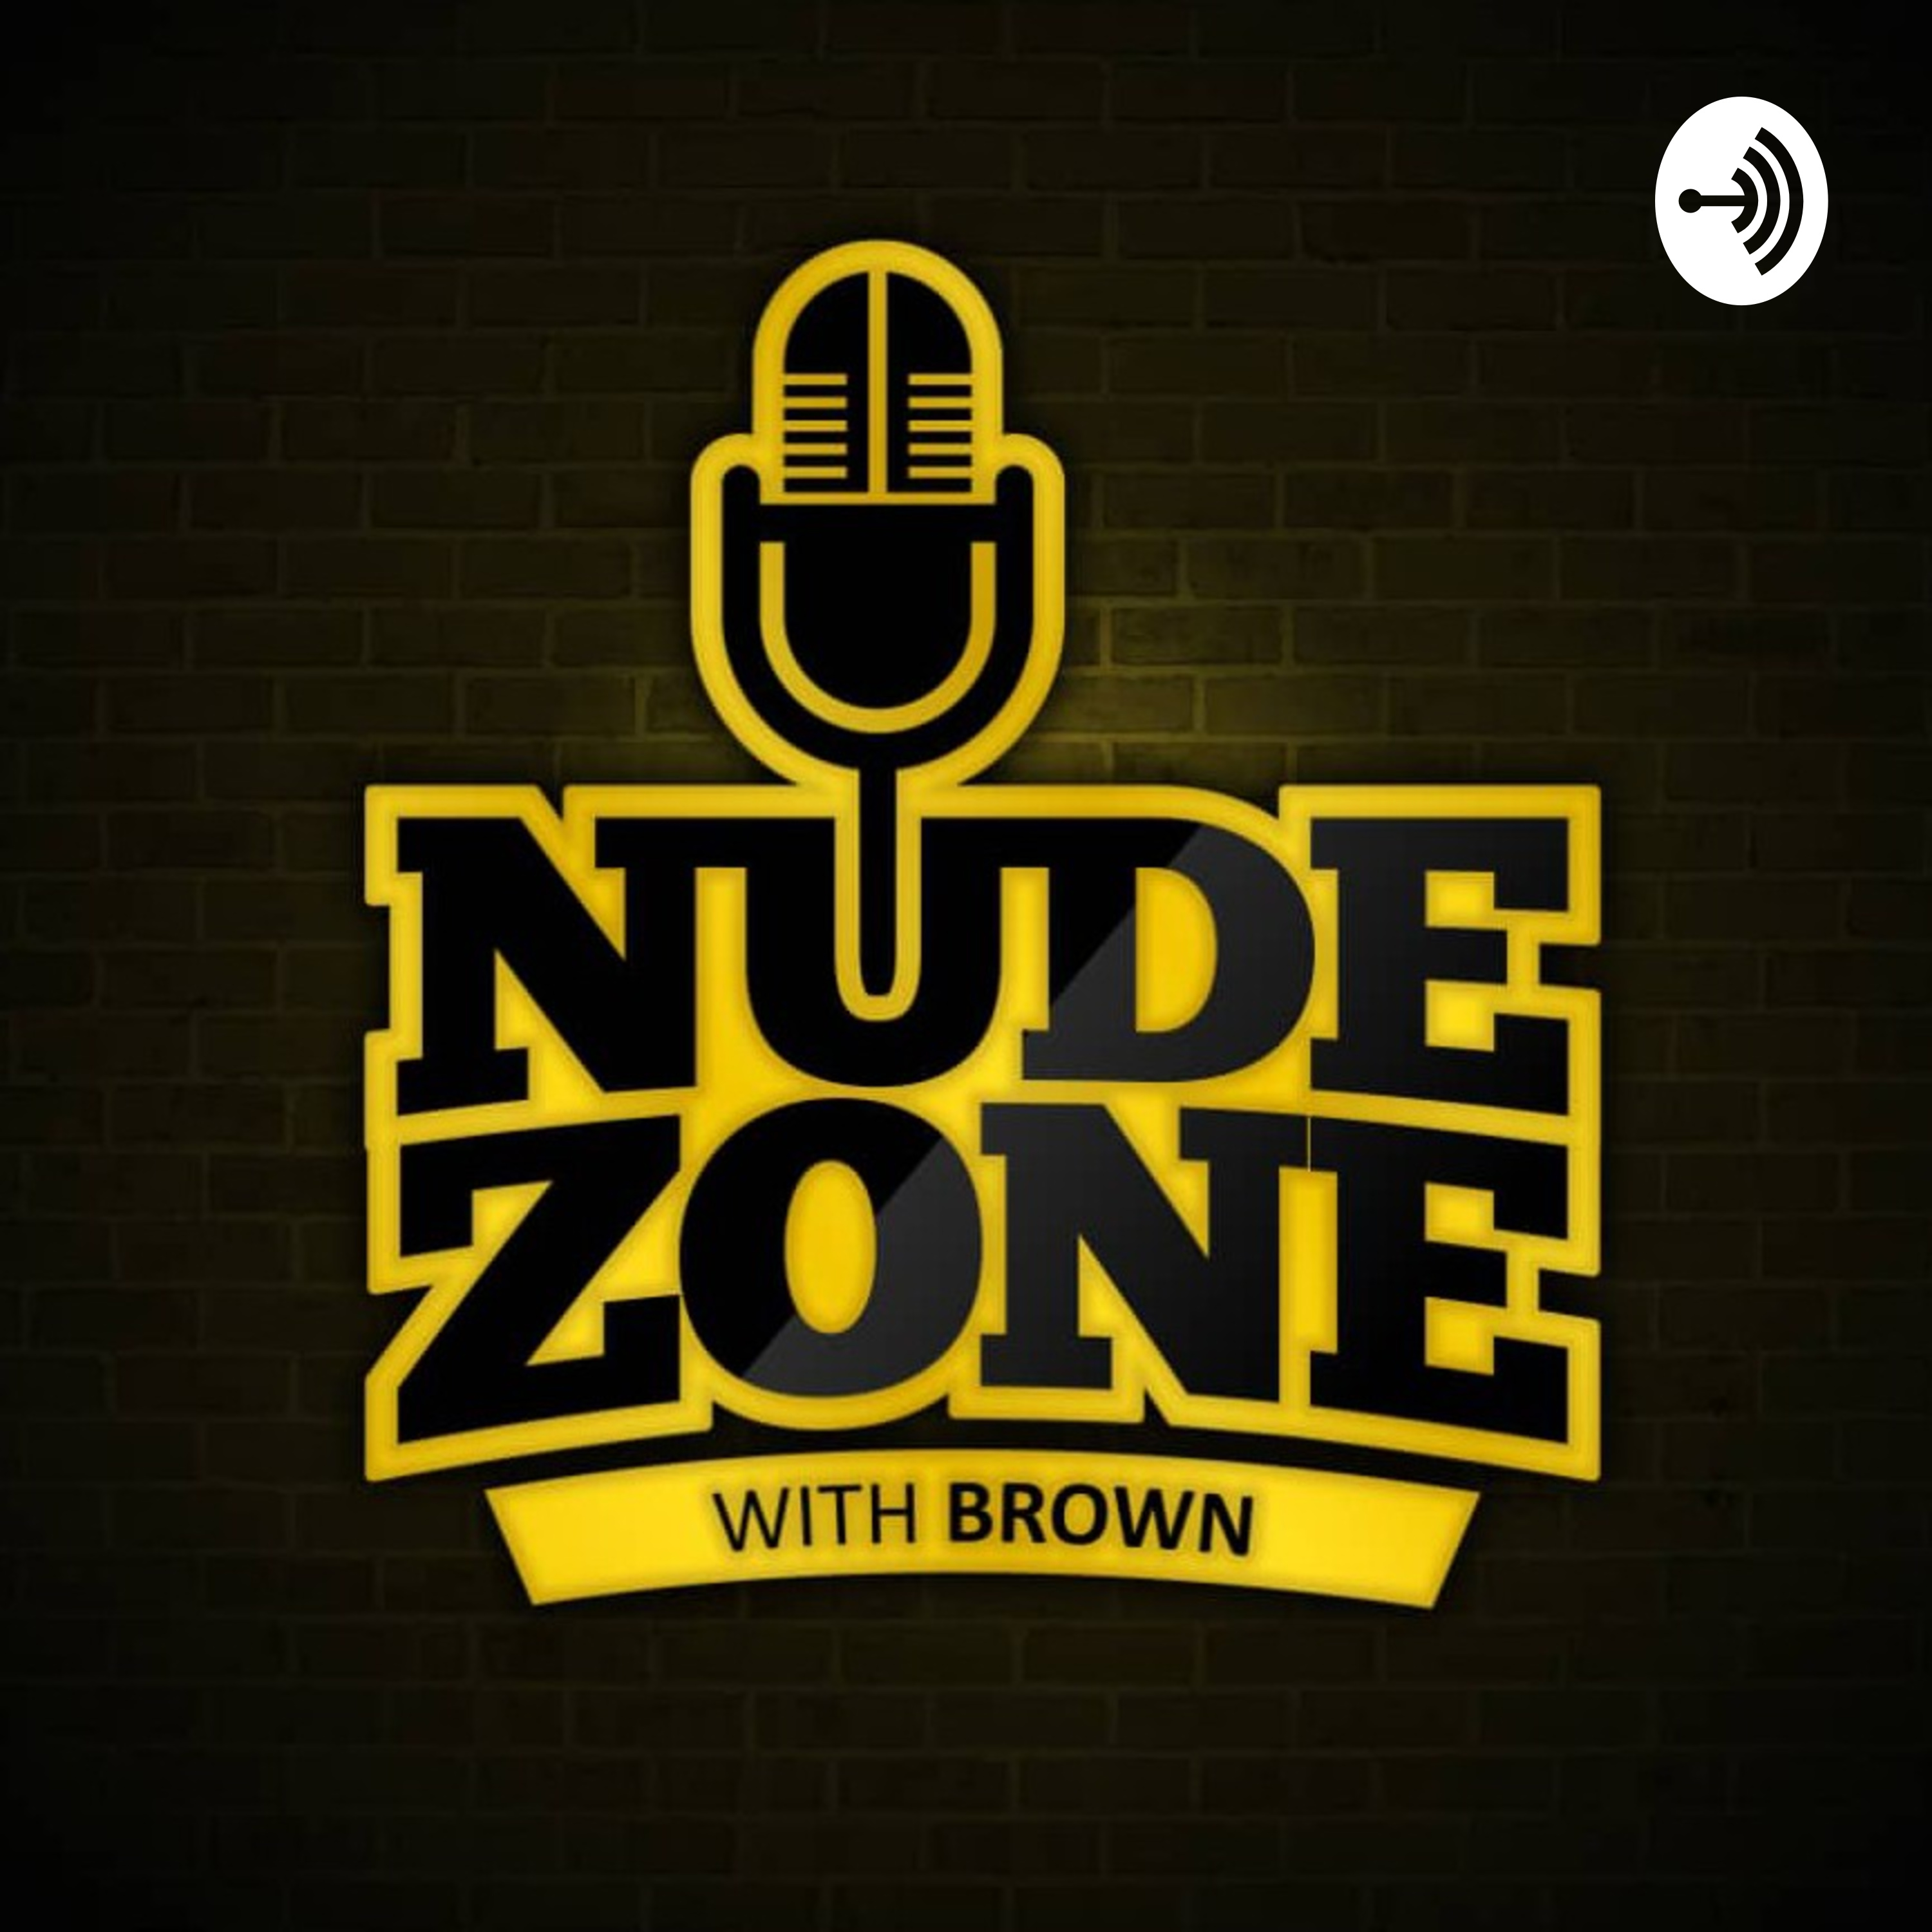 NUDEZONE WITH BROWN